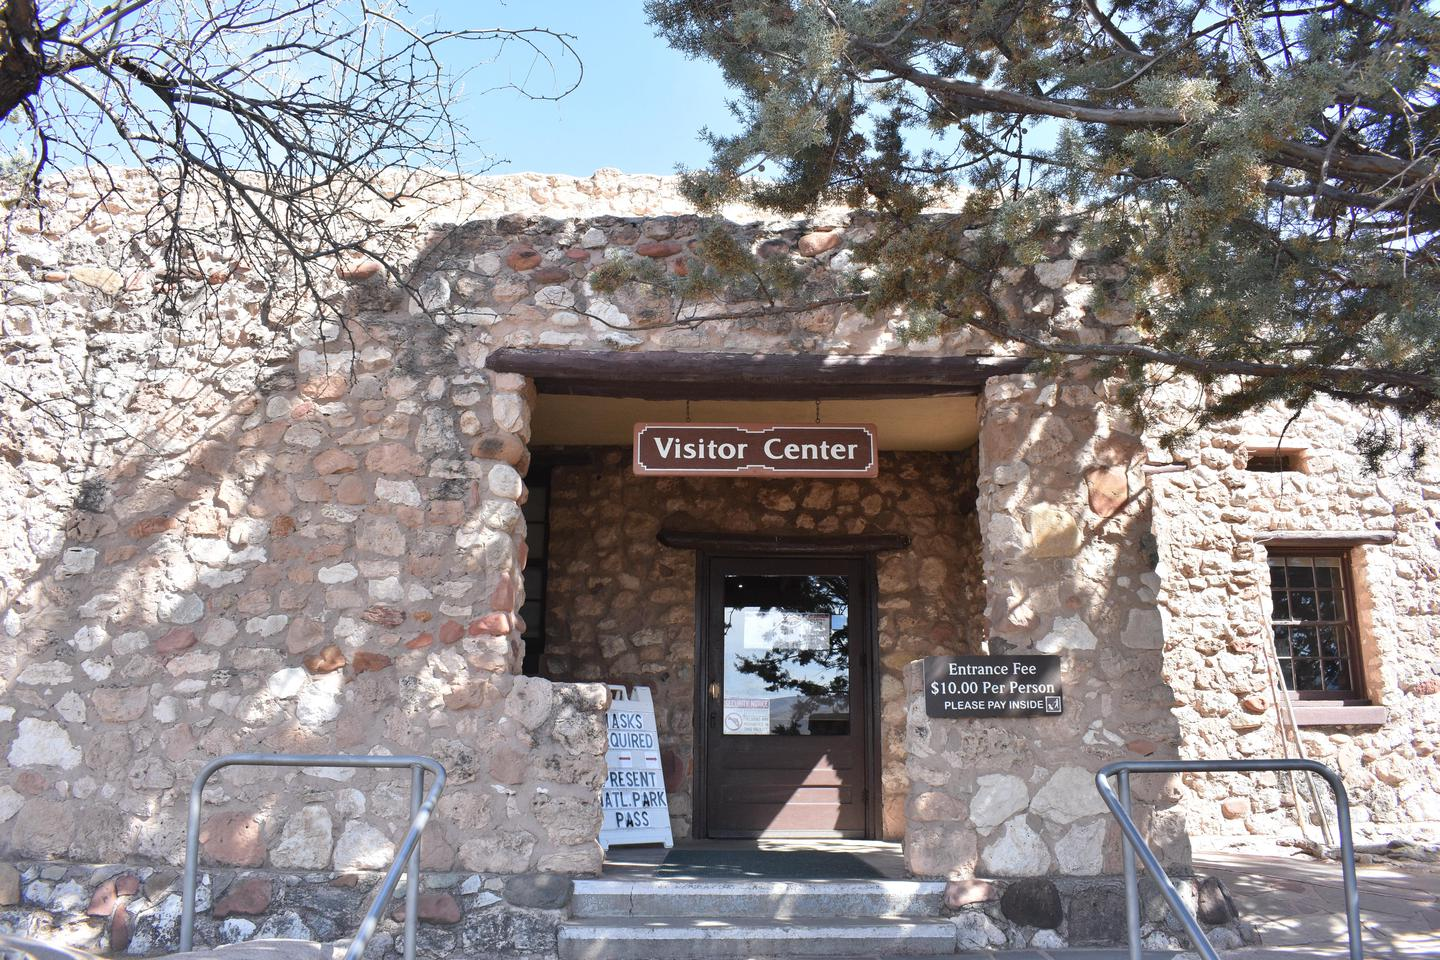 Tuzigoot Visitor Center EntranceThe front entrance to the Visitor Center